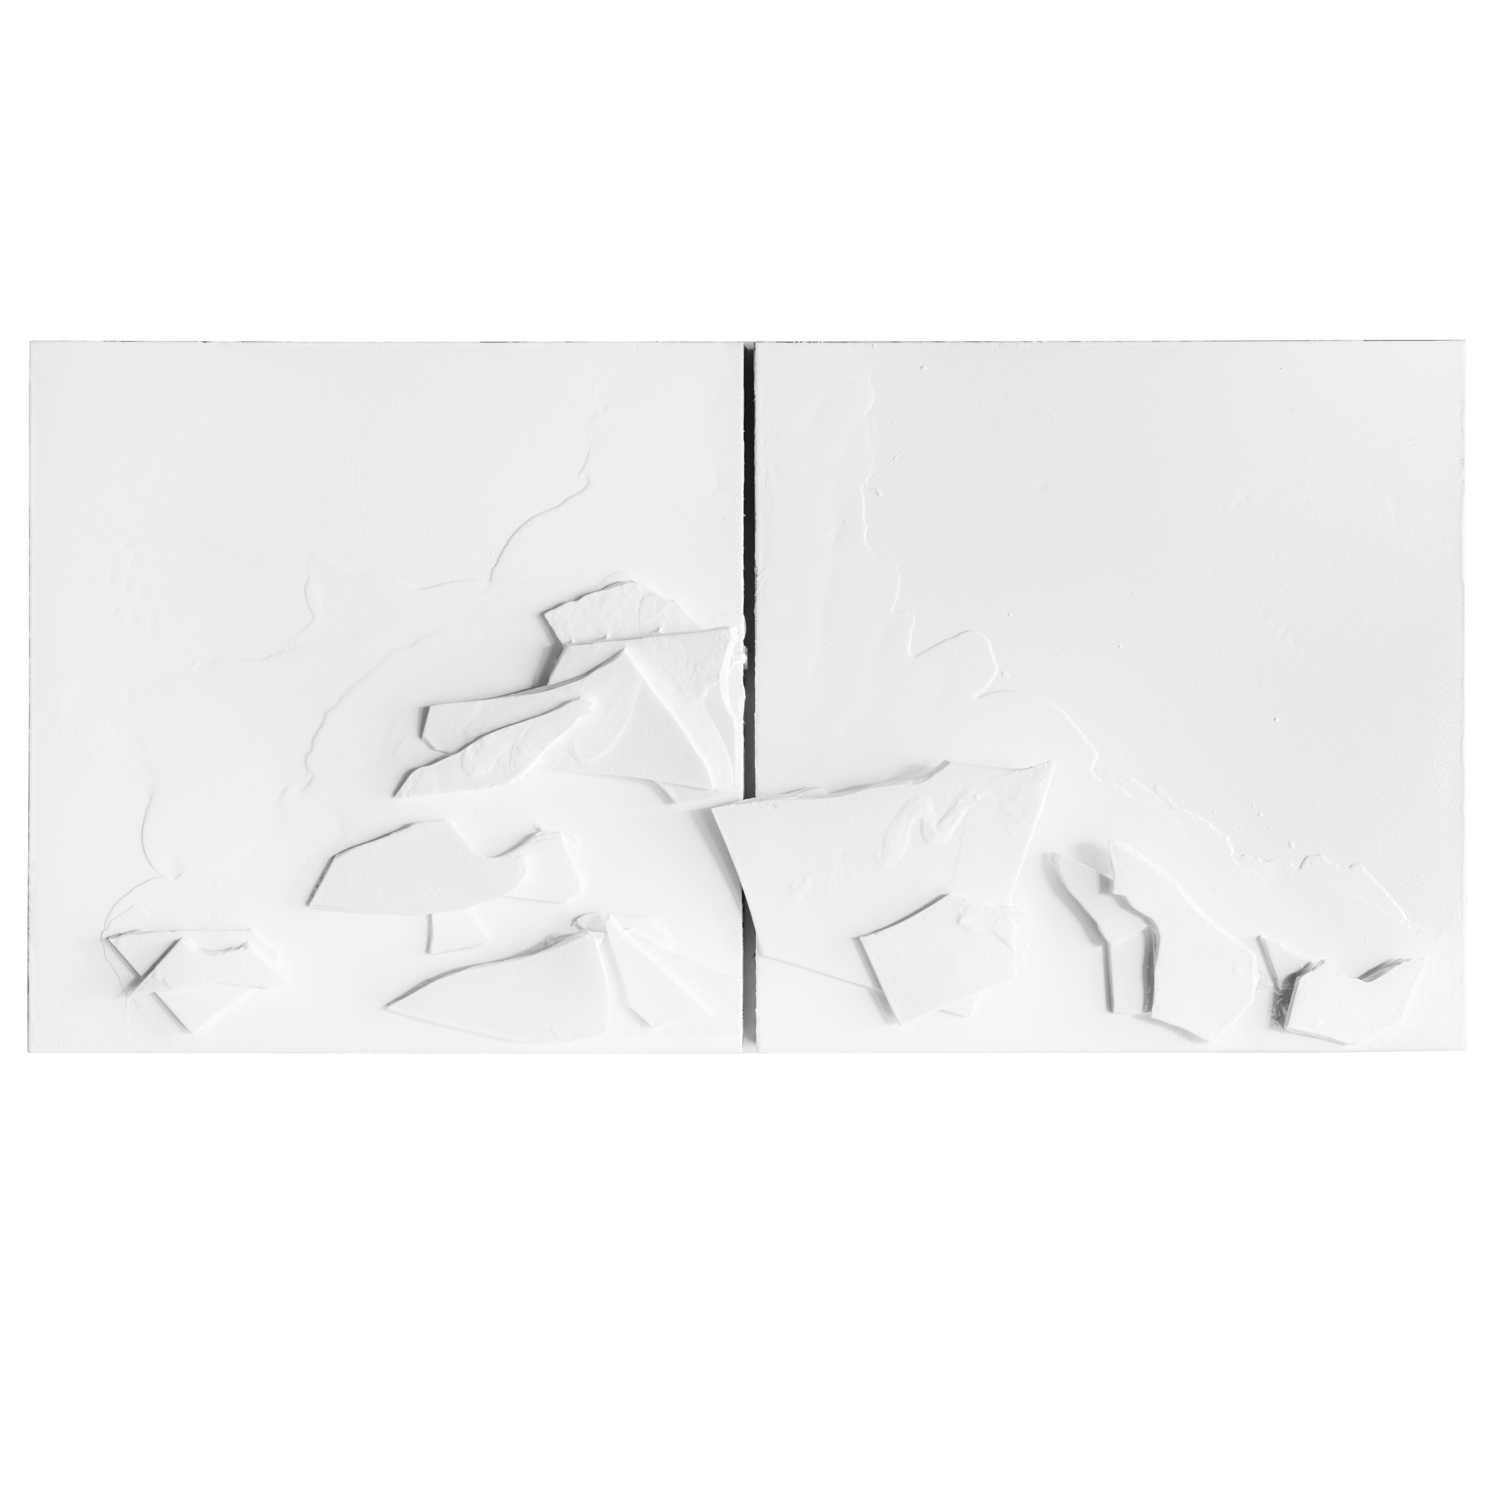 "#402 Break Up (diptych), 41"" x 41"" (x2)"